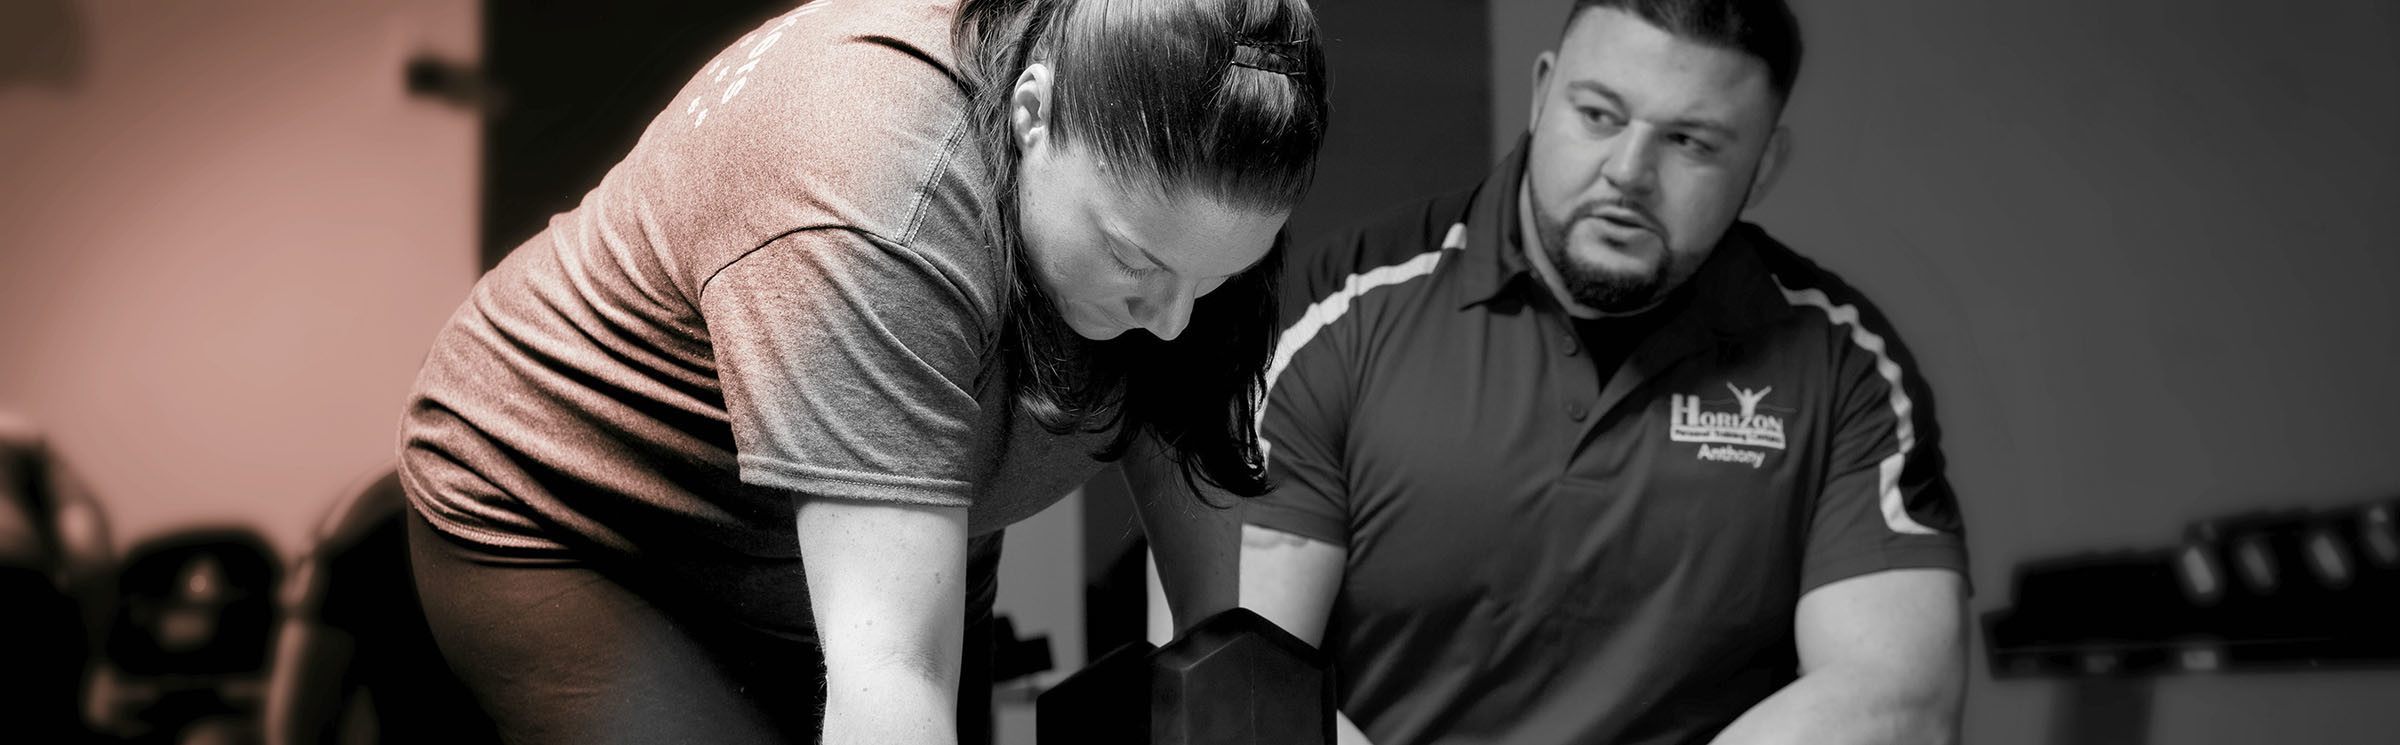 Adult Personal Training in CT